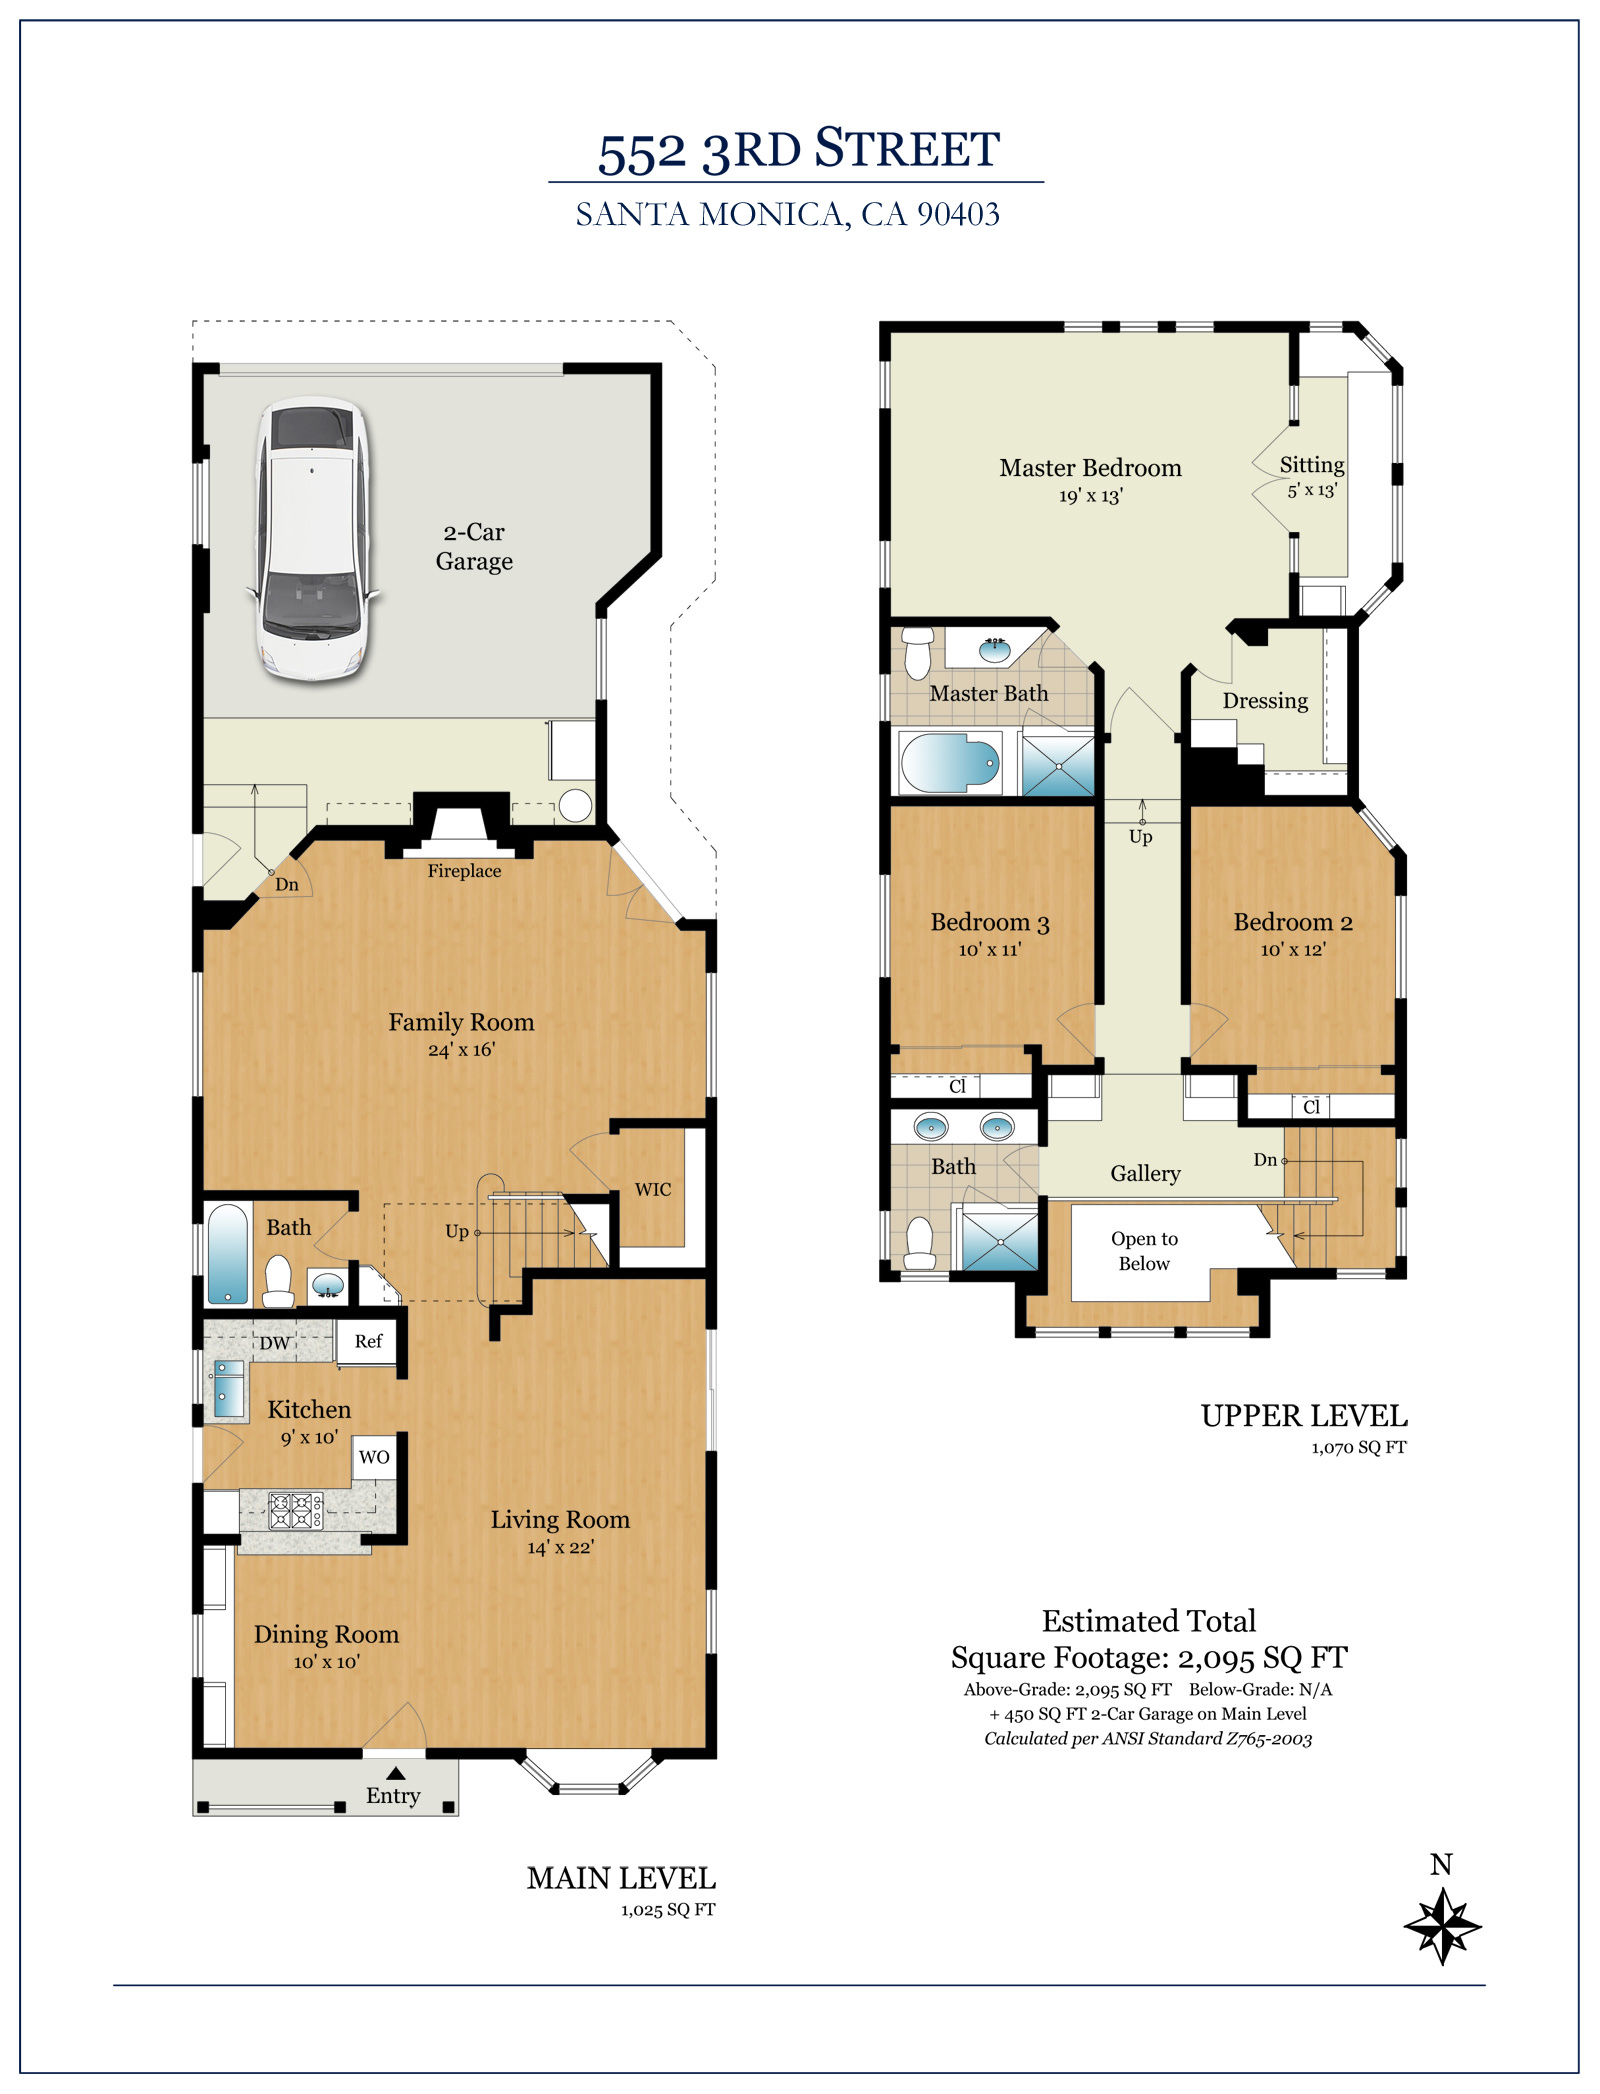 Floor Plans Avenue Eye Real Estate Photography And Marketing